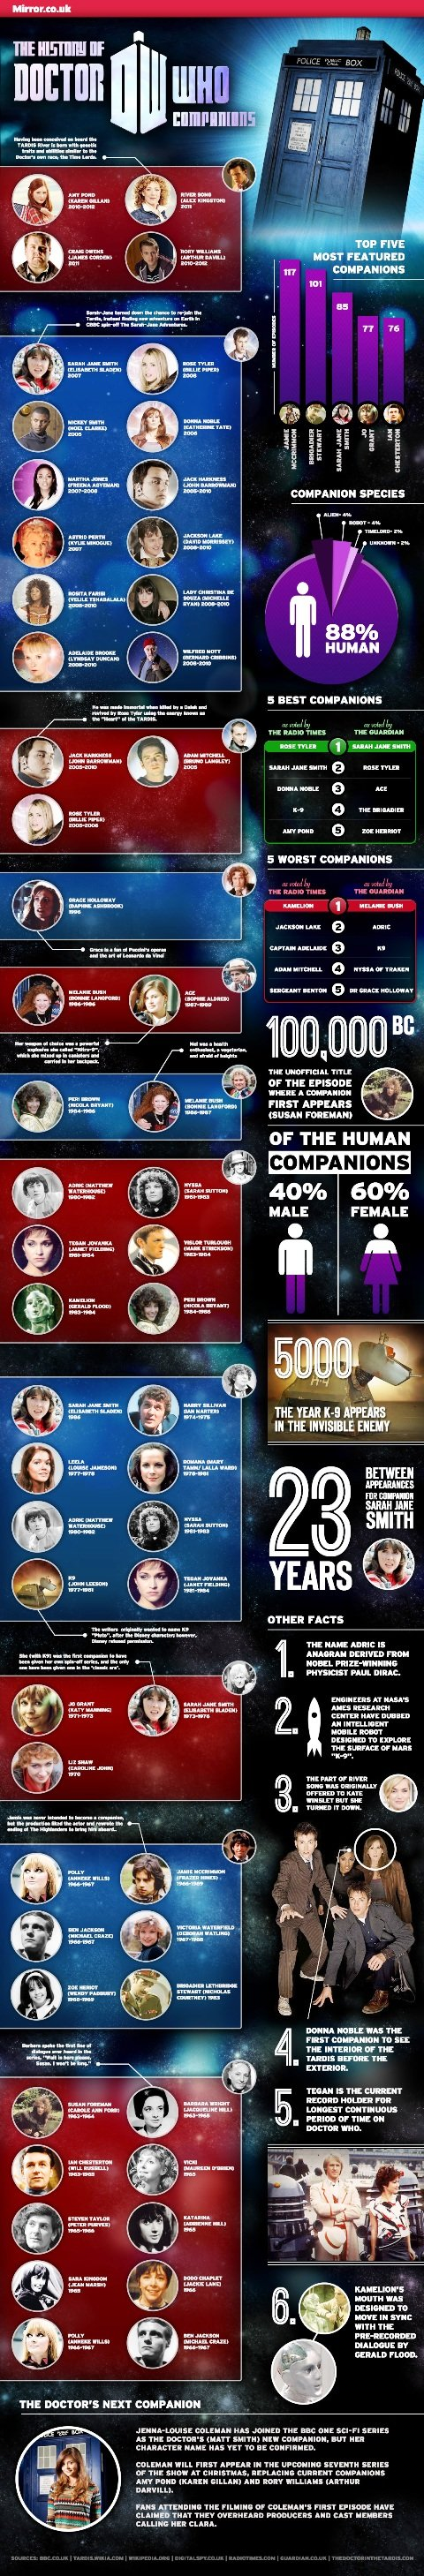 the history of DW who companions #infographic